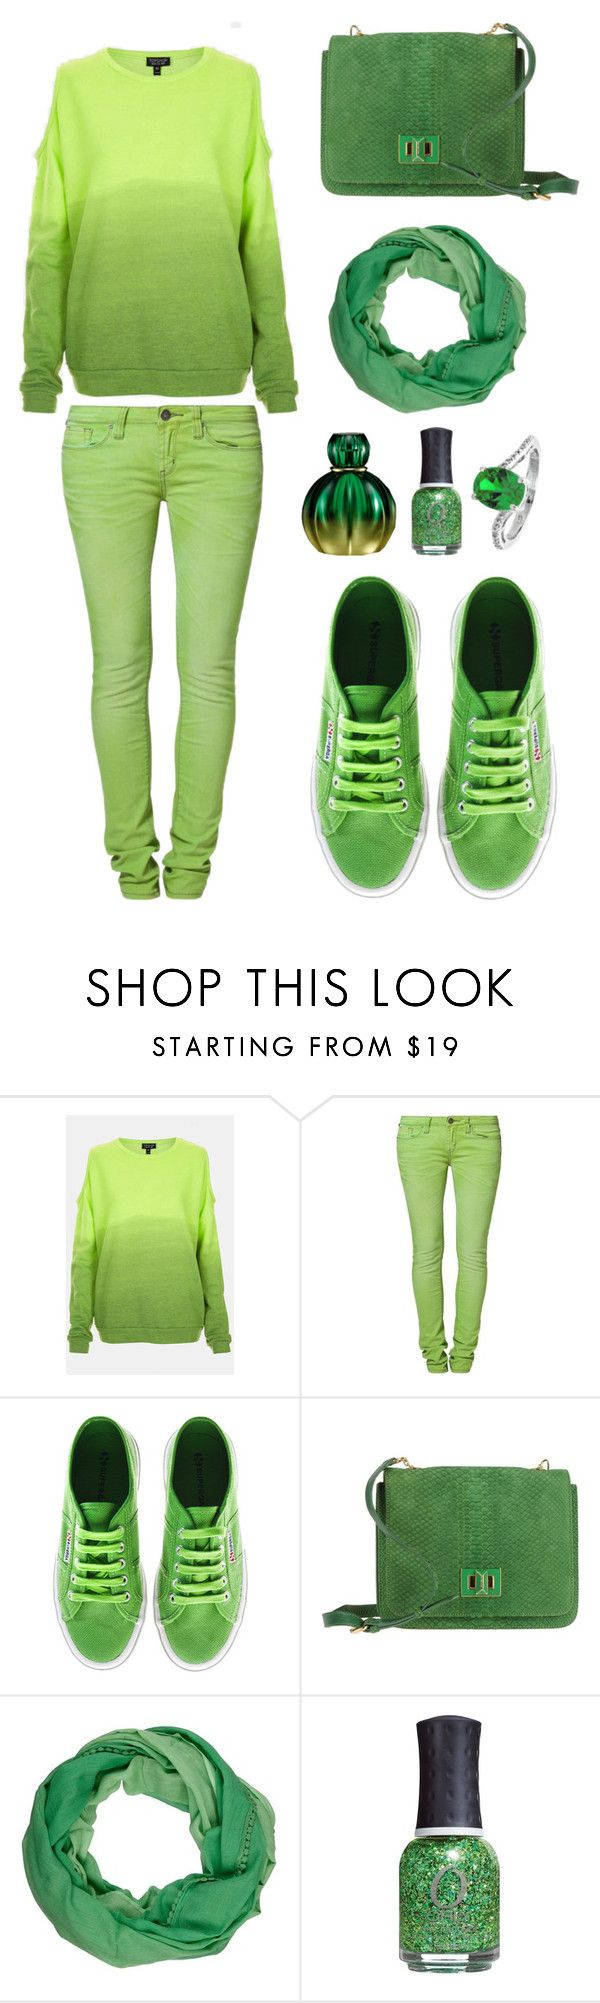 """""""ɢᴙᴇᴇᴎ"""" by pigeon15 ❤ liked on Polyvore featuring Topshop, One Green Elephant, Superga, Emilio Pucci, Passigatti, ORLY and Reeds Jewelers"""